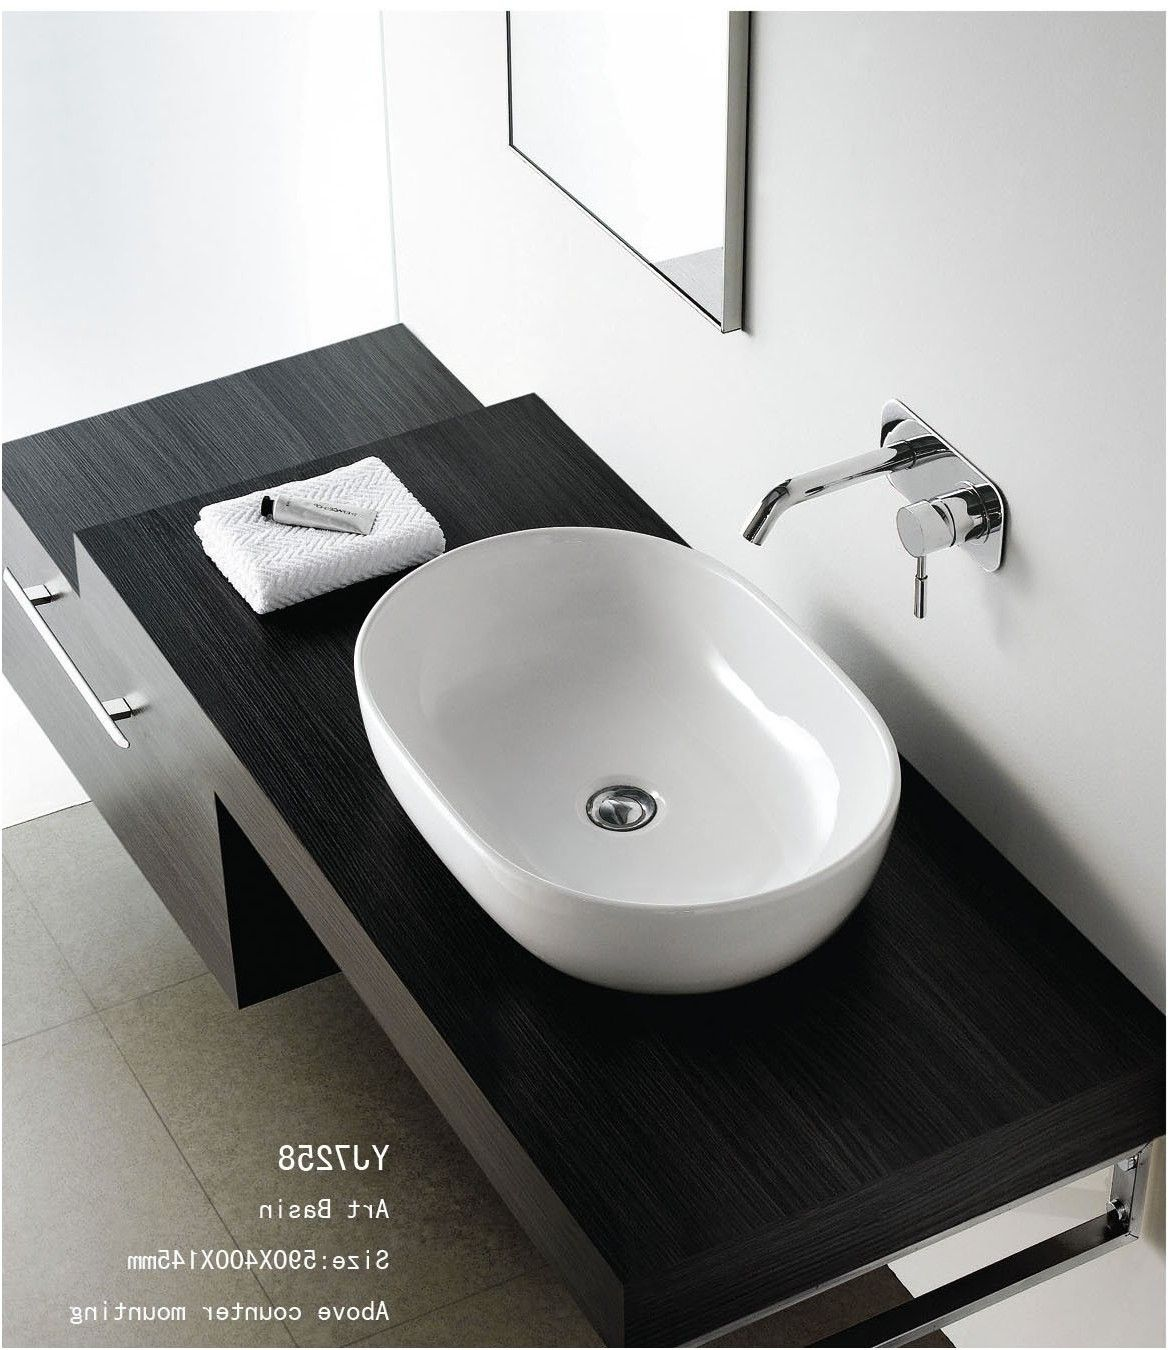 Designer Bathroom Sinks Basins Designer Bathroom Sinks Basins Gurdjieffouspensky From Bathroom